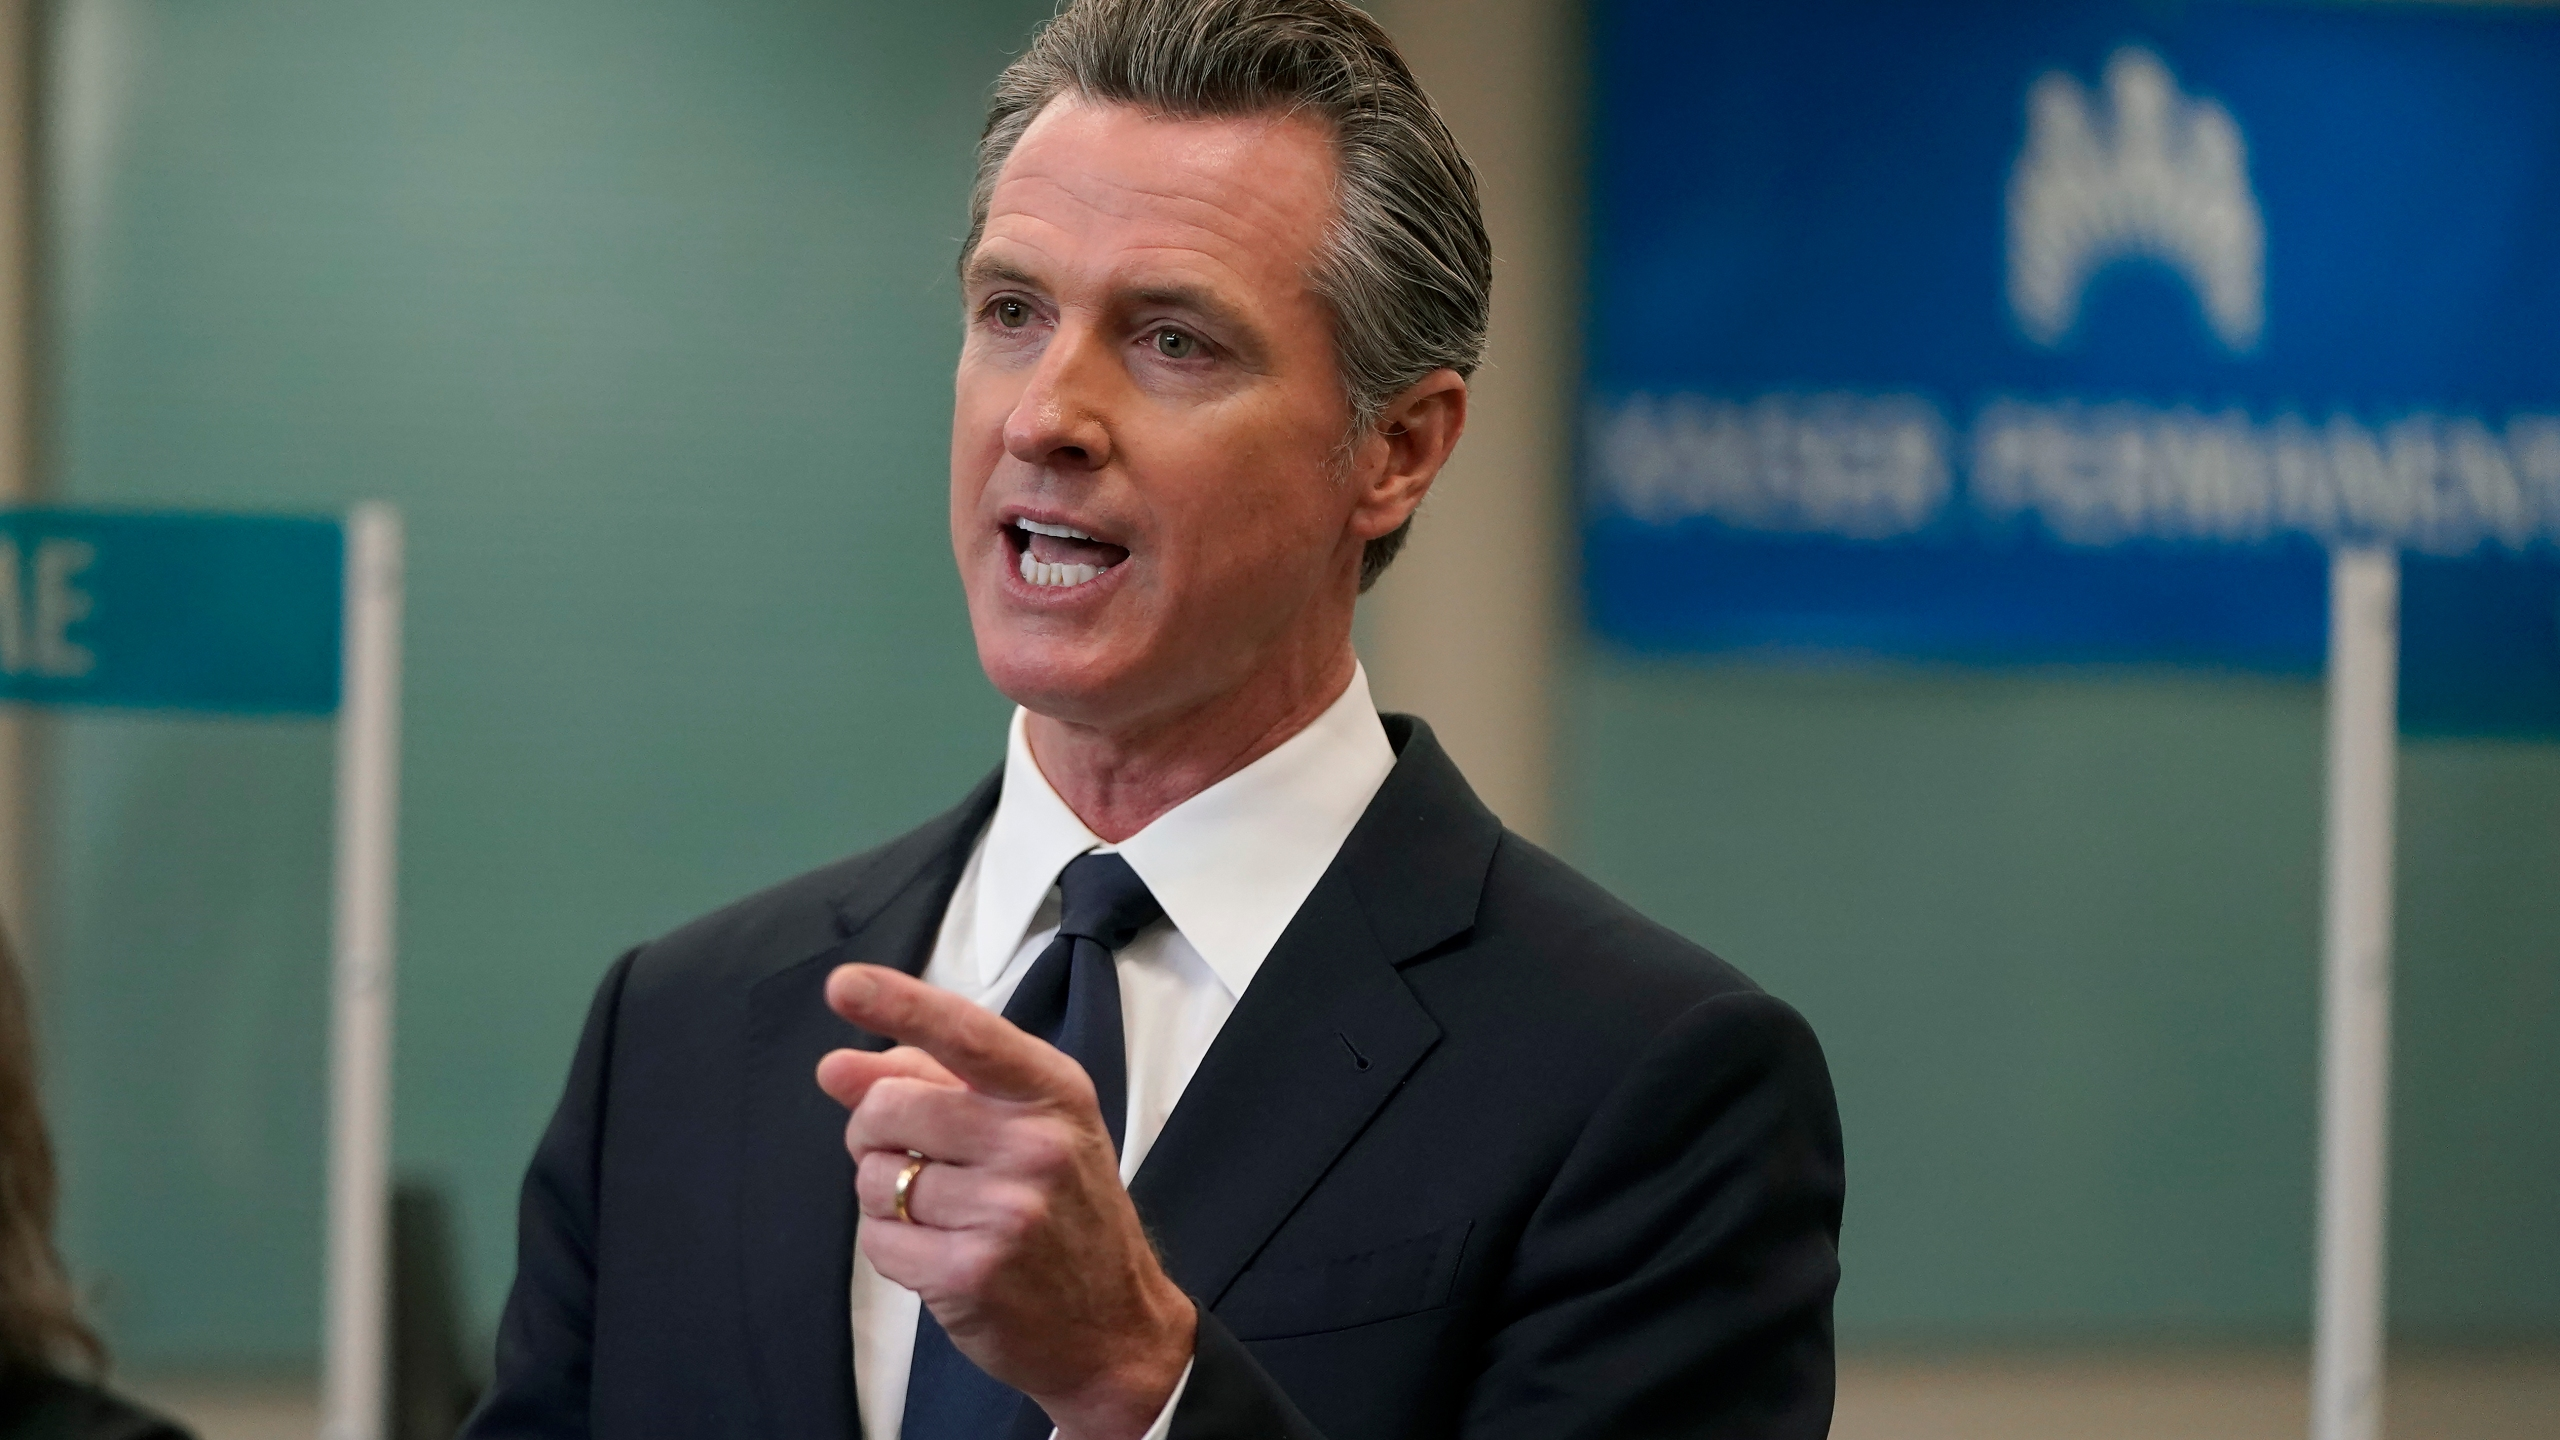 In this July 26, 2021 file photo Gov. Gavin Newsom speaks at a news conference in Oakland, Calif. Newsom's administration announced $350 million in incentives aimed at convincing people on Medicaid to get vaccinated against the coronavirus, Friday, Aug. 6, 2021. (AP Photo/Jeff Chiu, File)